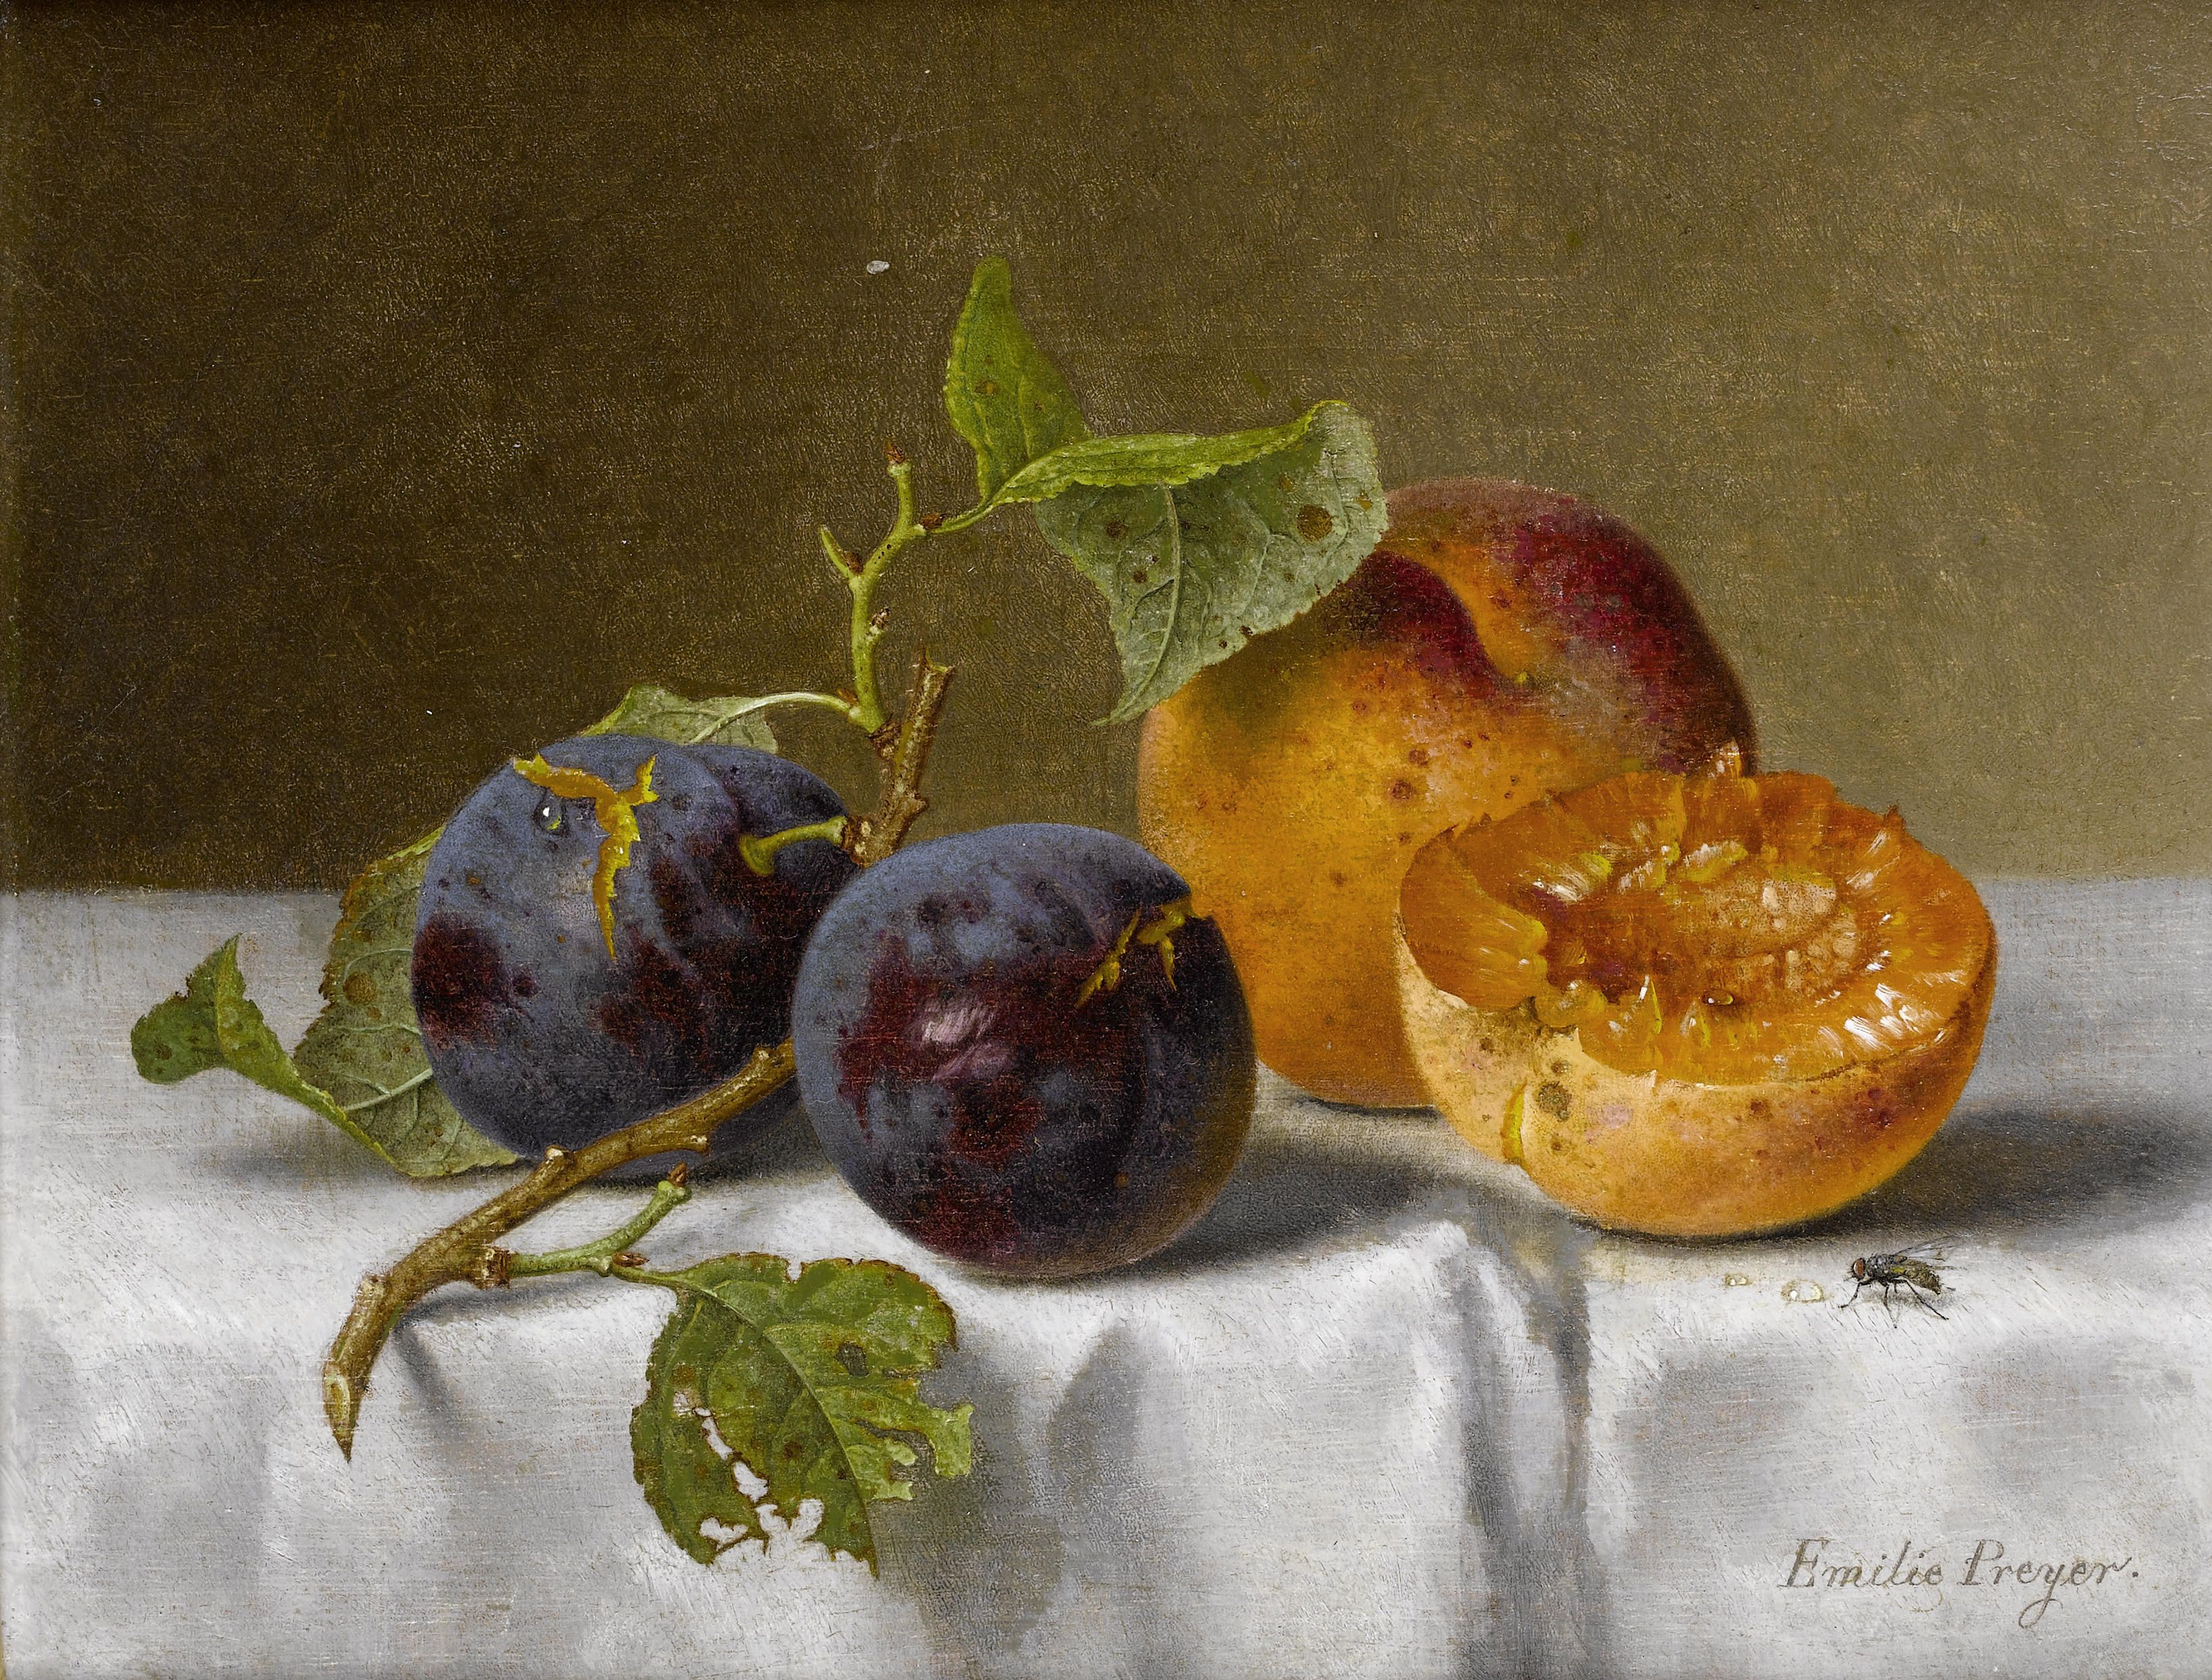 Emilie Preyer paintings - plum and apricot still life